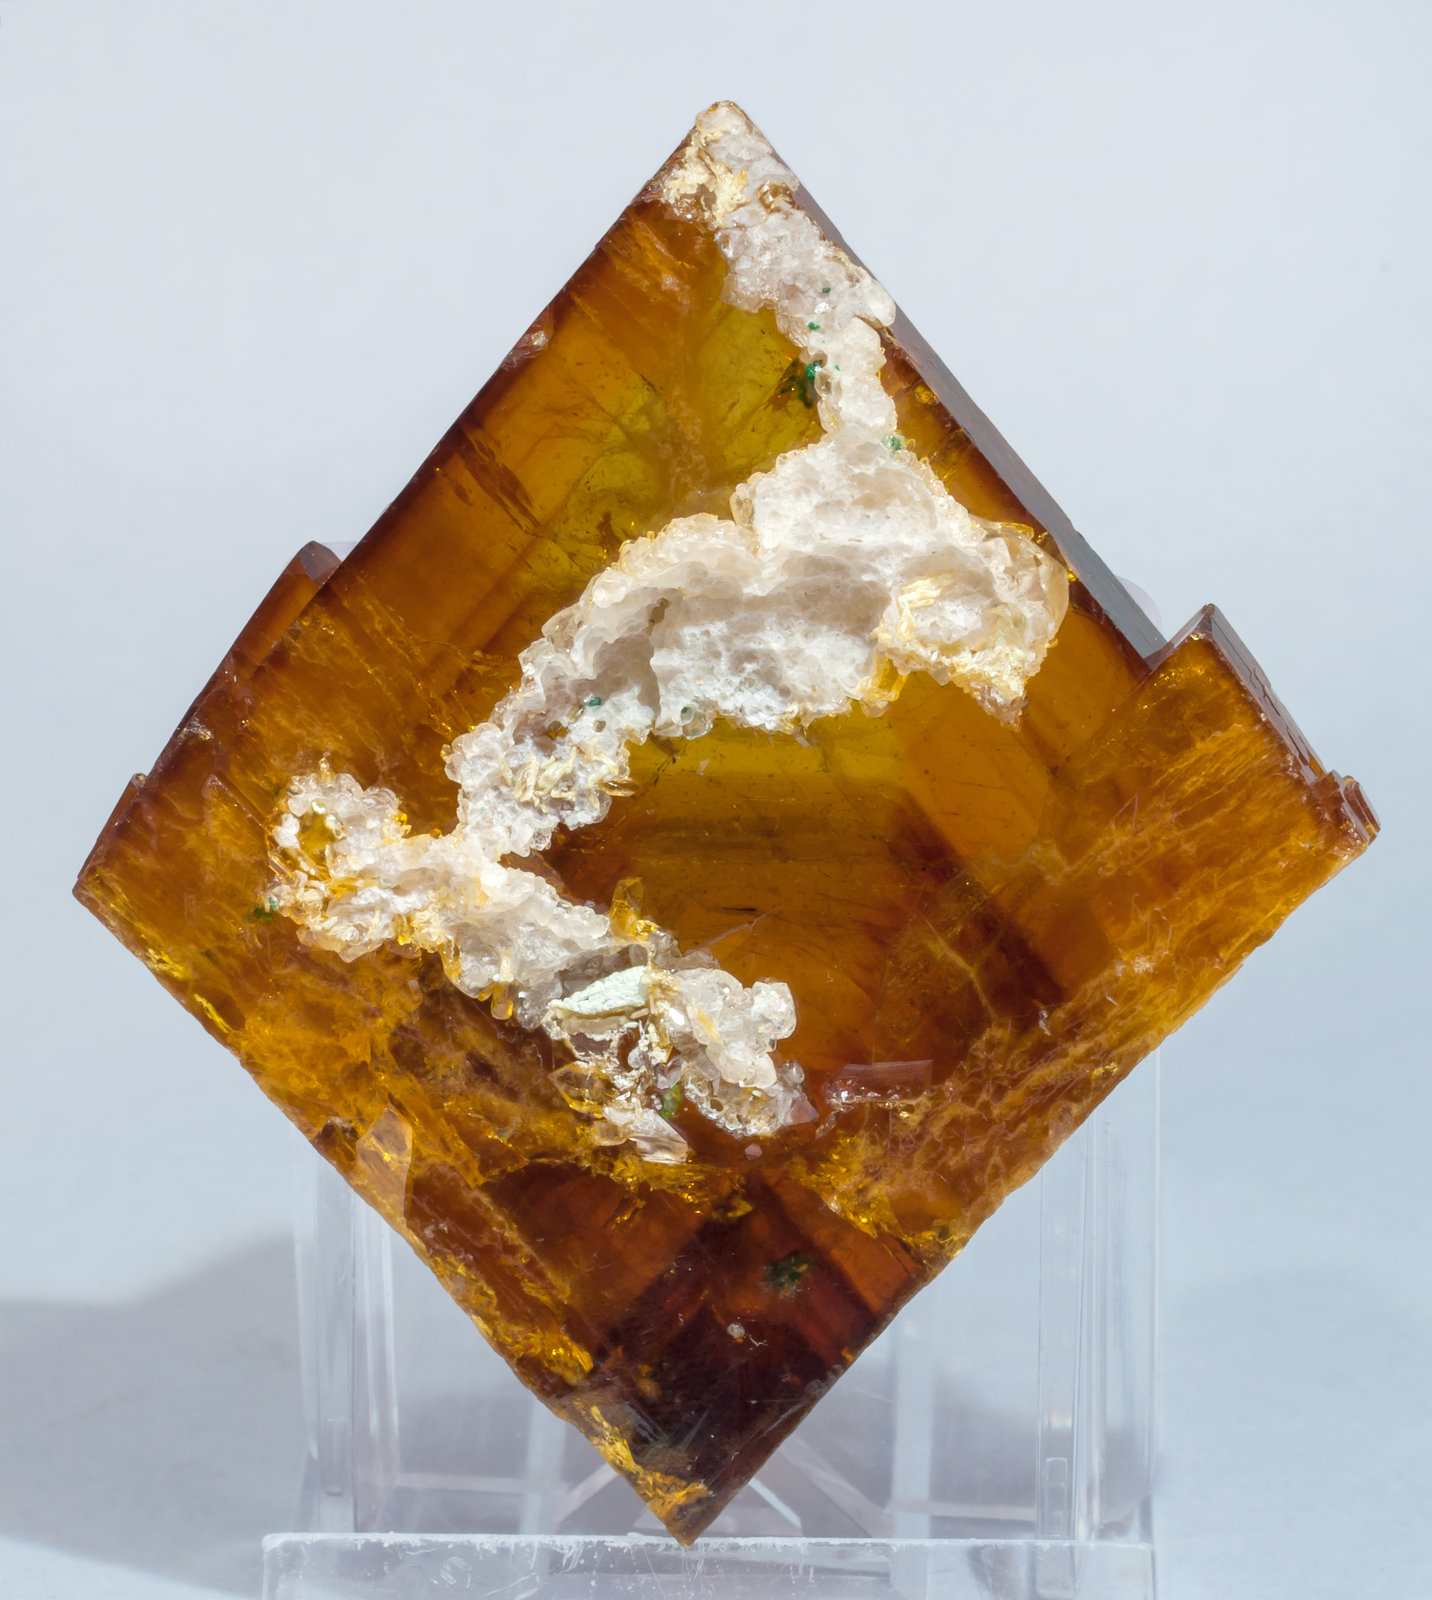 specimens/s_imagesAK9/Baryte-ND92AK9r.jpg